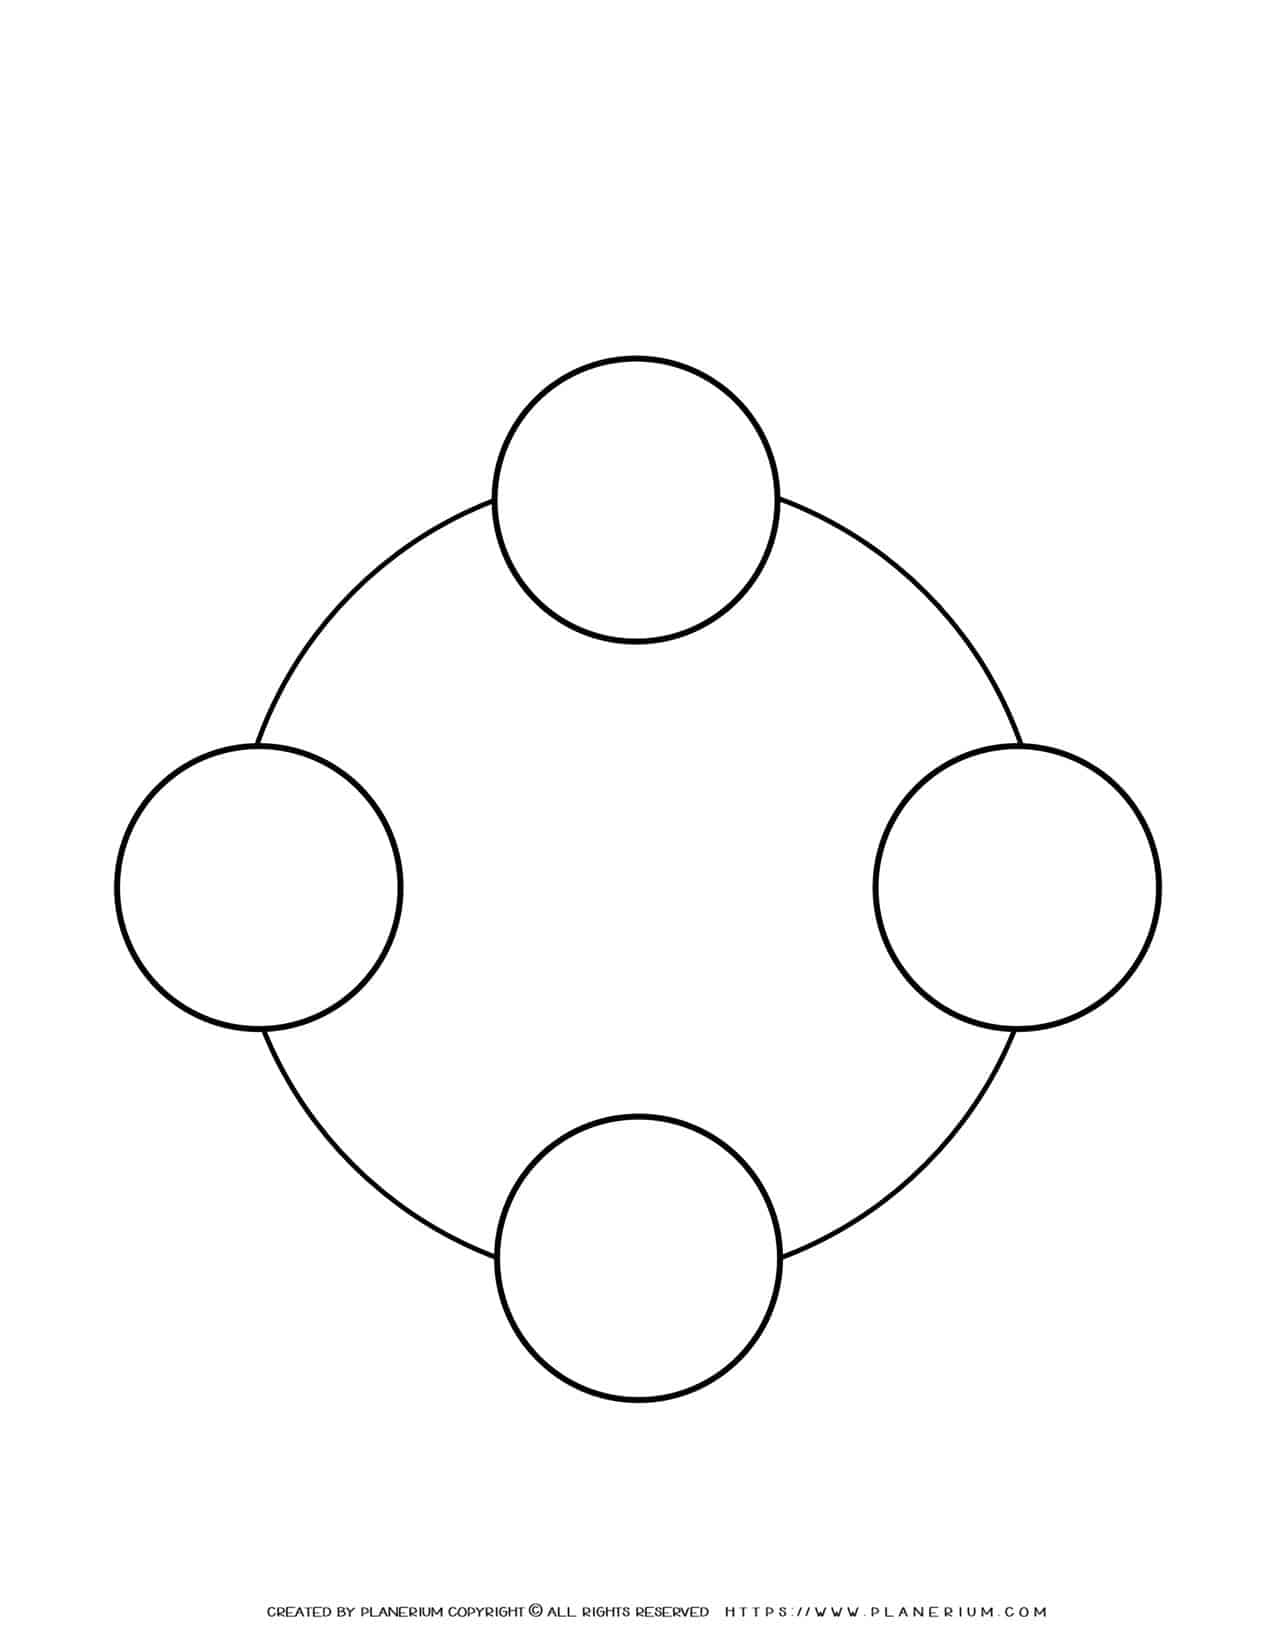 Sequence Chart Template - Four Circles on a Circle   Planerium